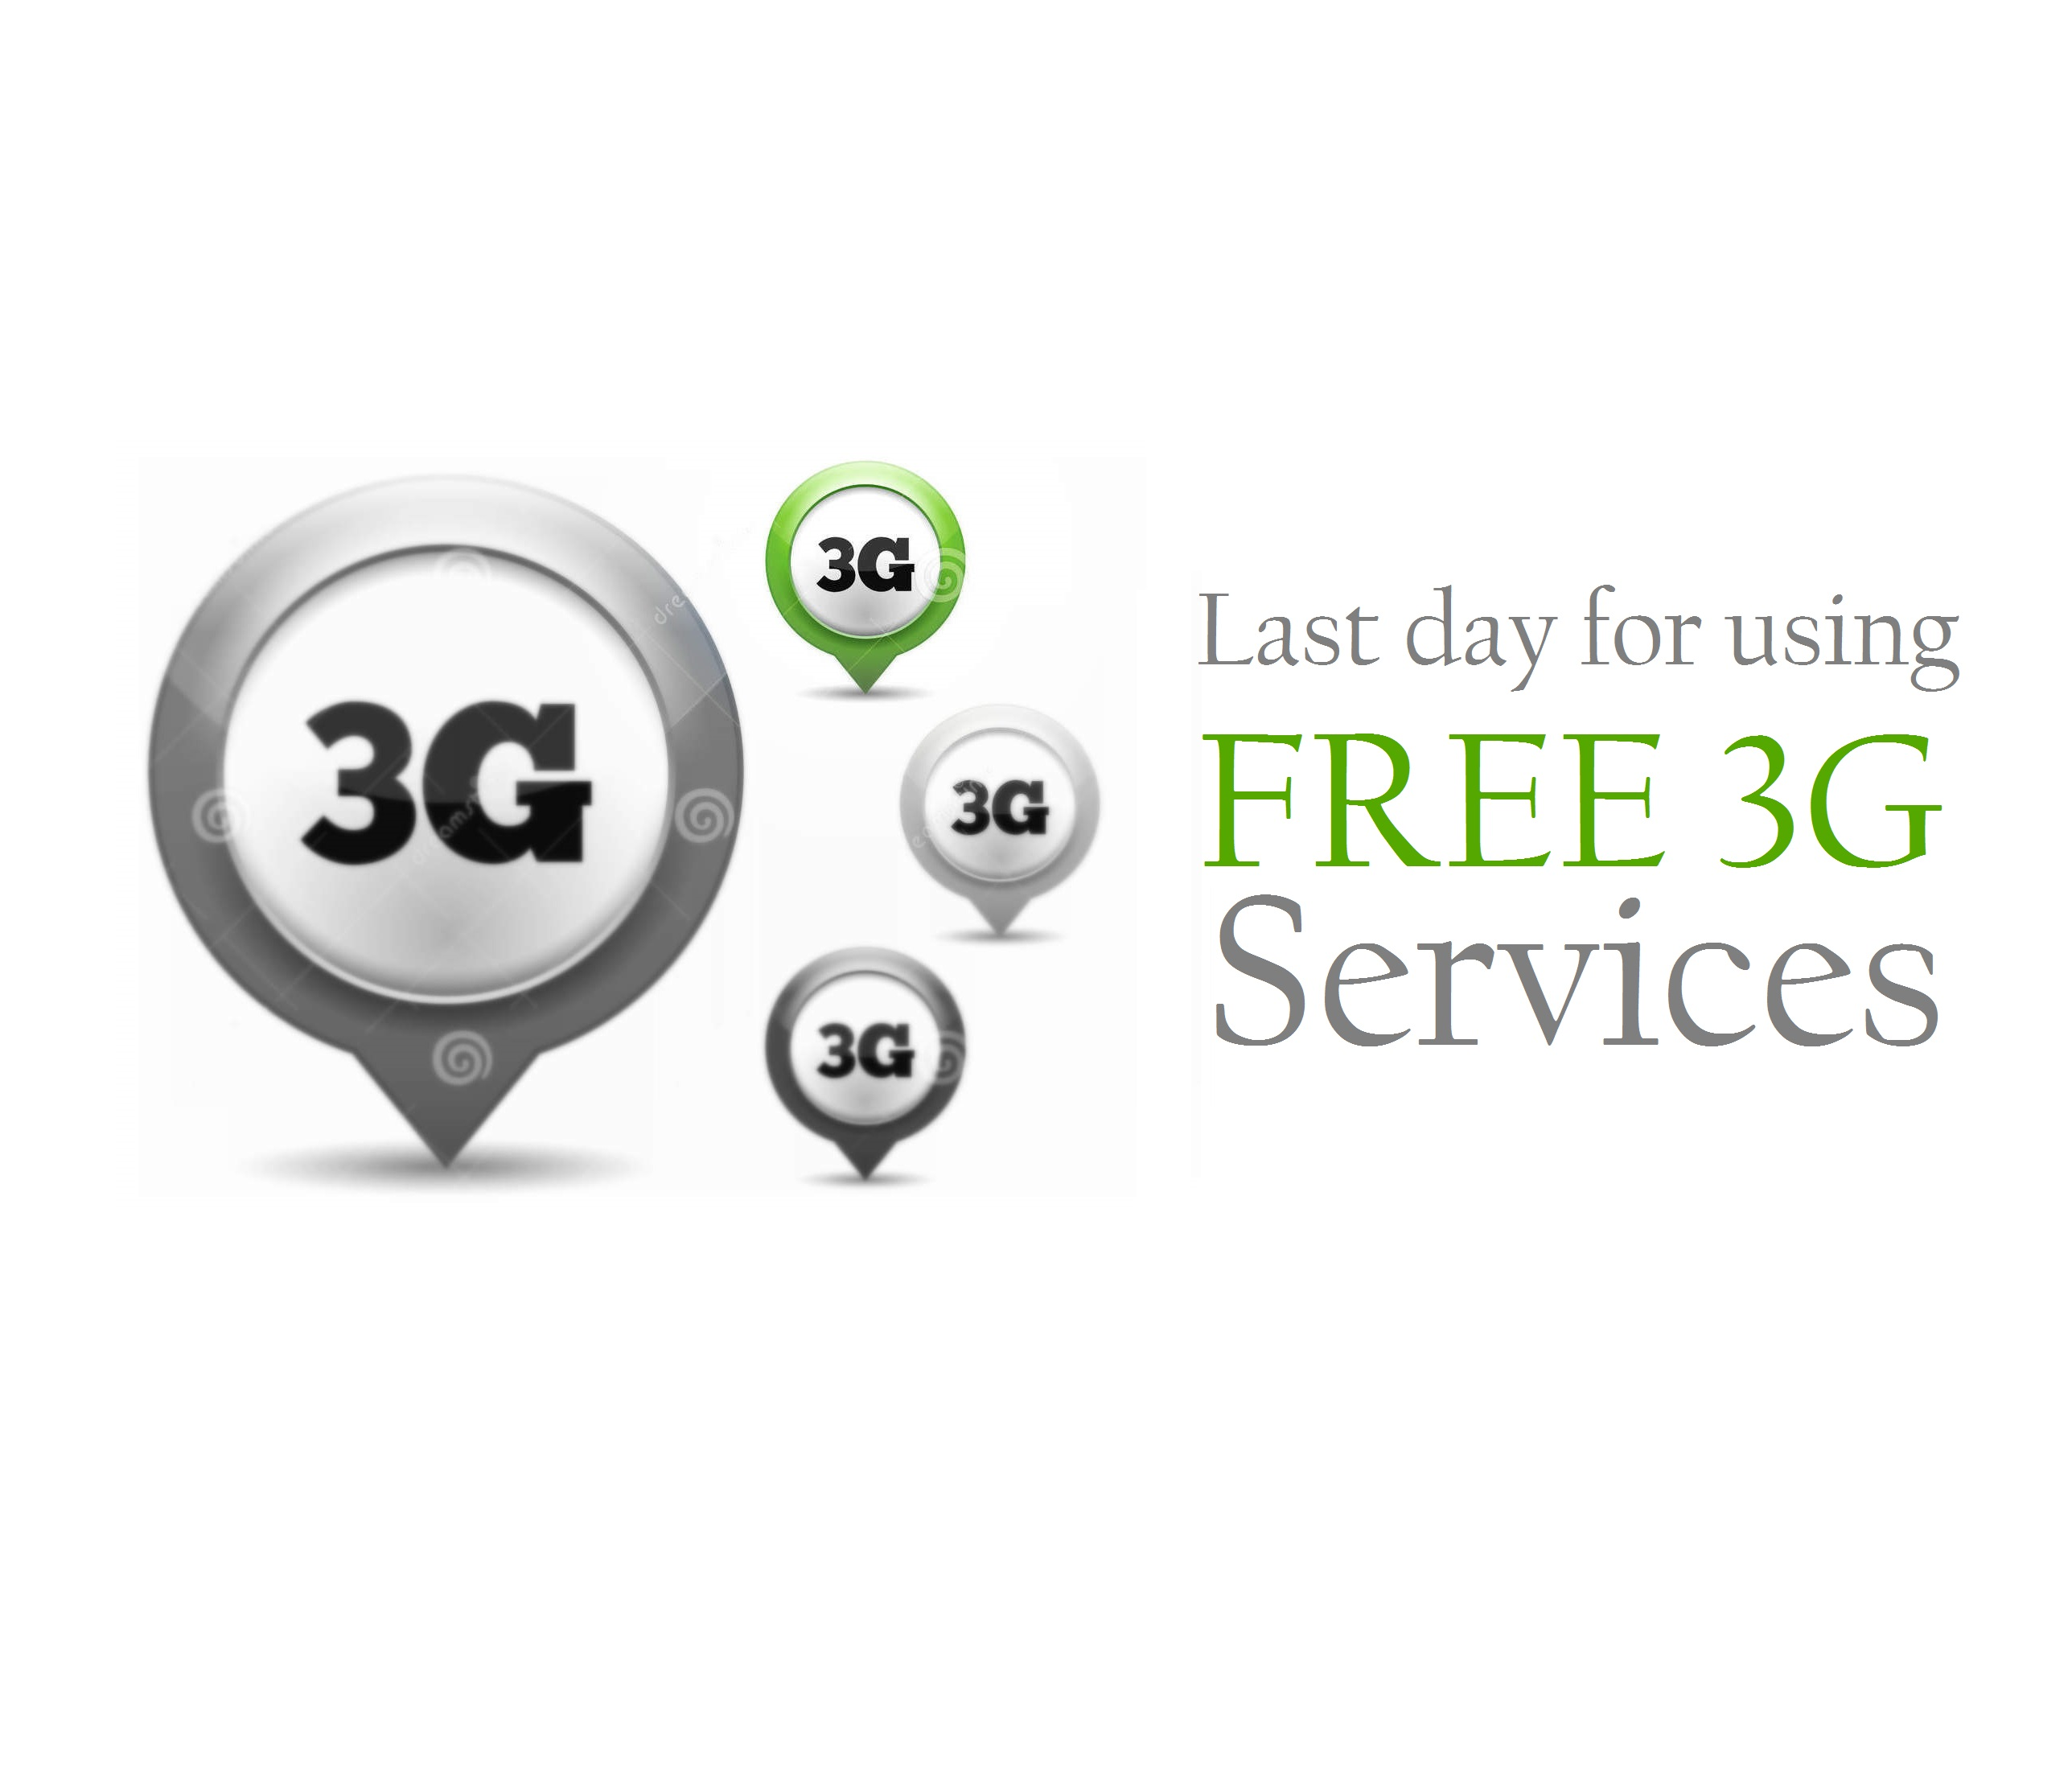 Last day for using FREE 3G services